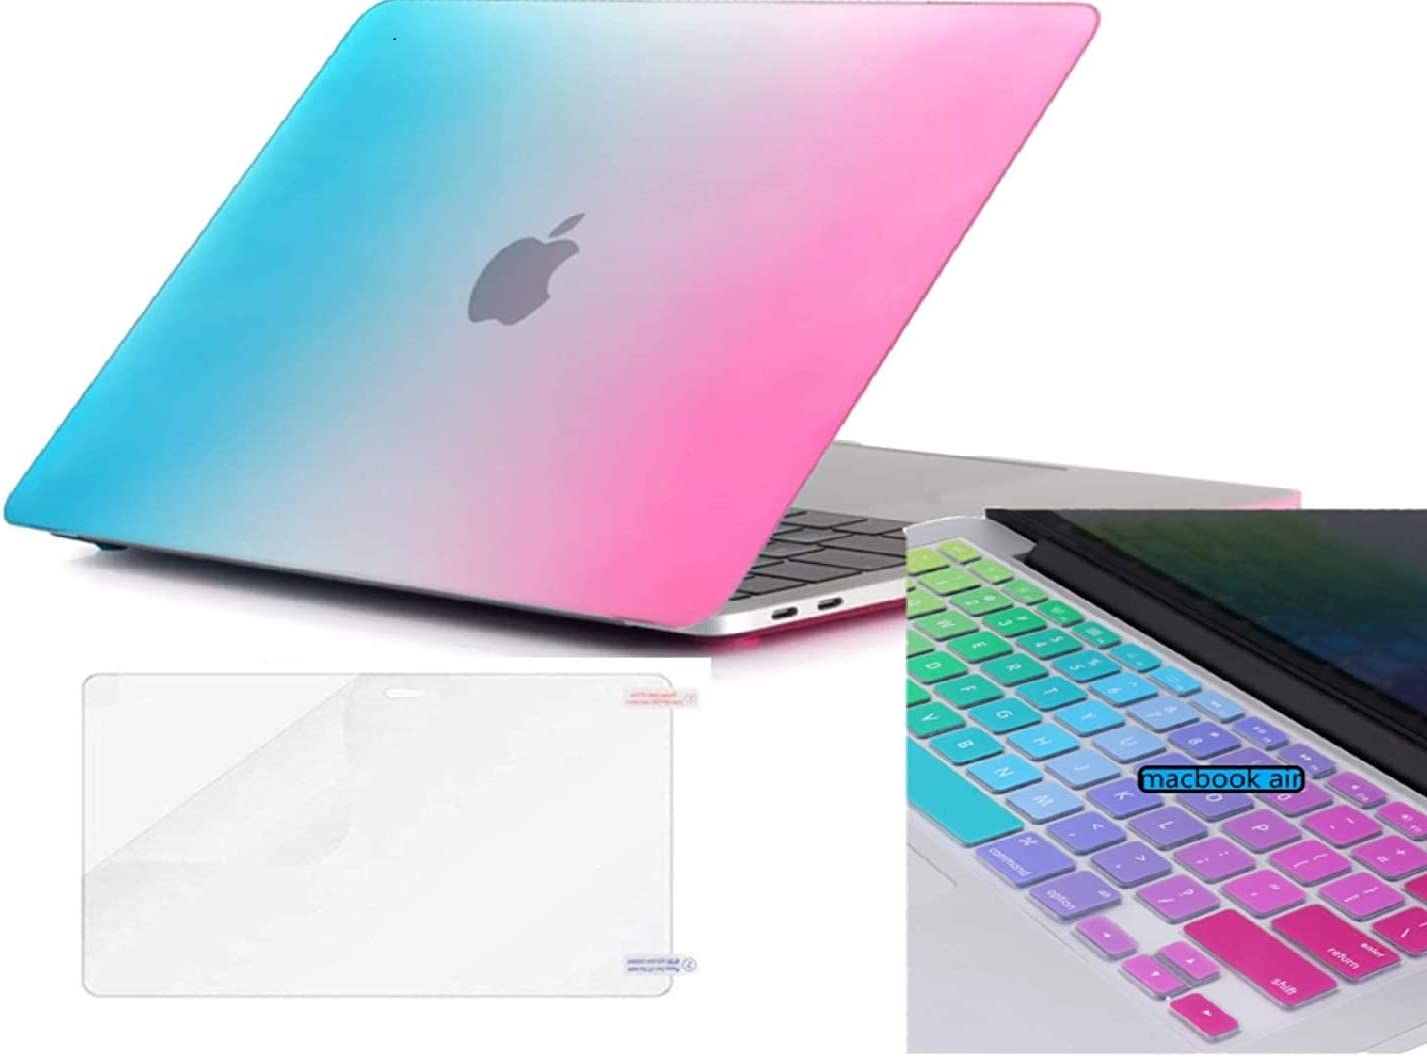 MacBook Case Aircraft Fighter Jets MacBook Air Hard Cover Multi-Color /& Size Choices/10//12//13//15//17 Inch Computer Tablet Briefcase Carrying Bag